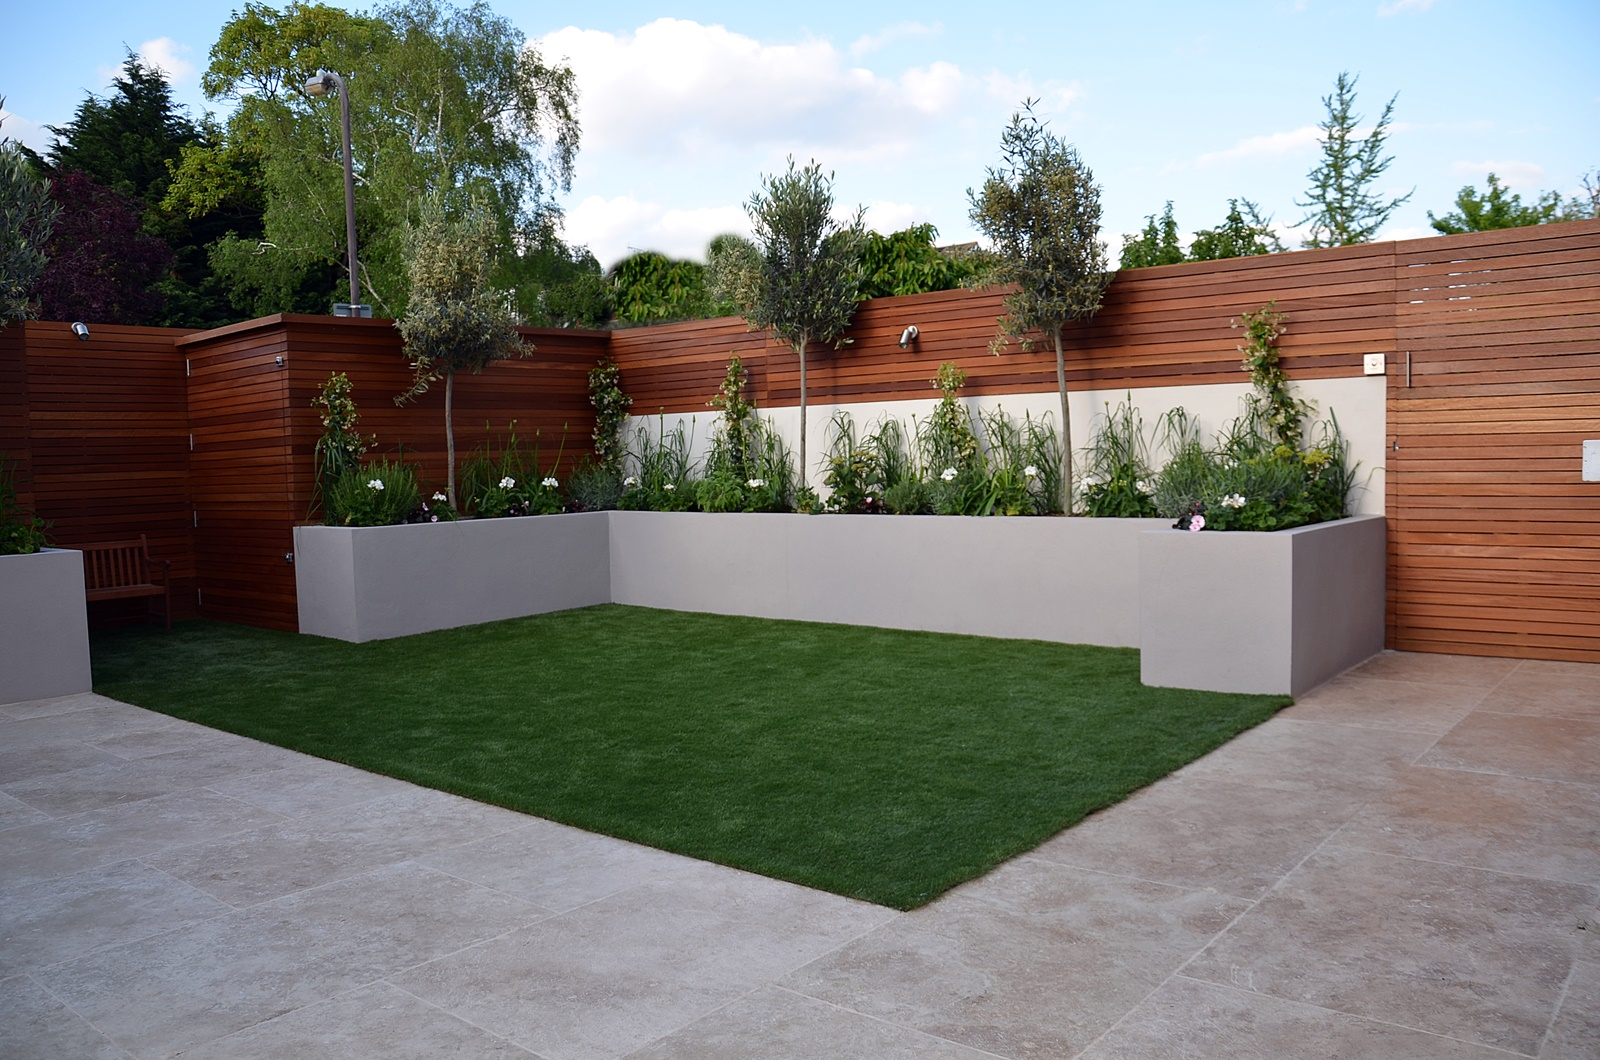 hardwood screen grey render raised beds travertine cream paving bespoke storage modern garden designer wimbledon cheam putney wandsworth london